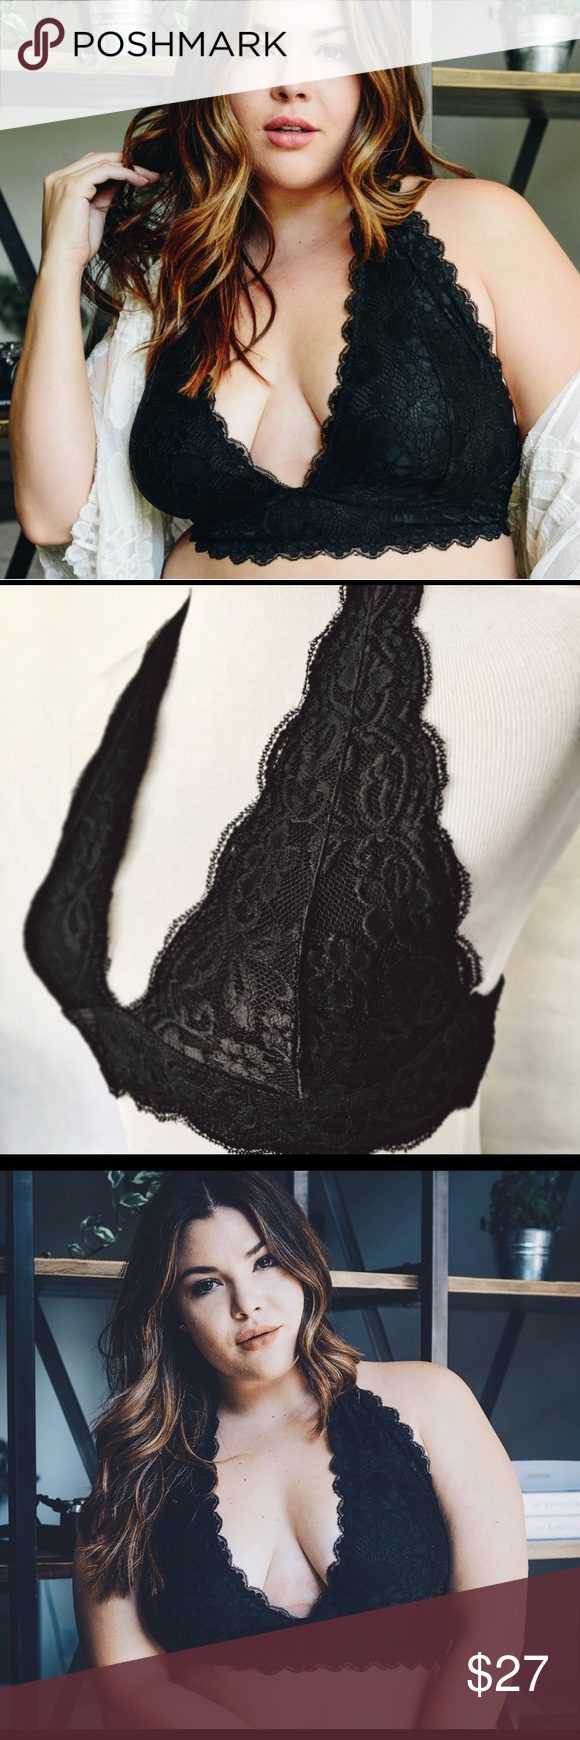 ed2542e40a XXXL Lined Black Lace Bralette Bra Gorgeous Lace Bralette in cup size C  through DDD